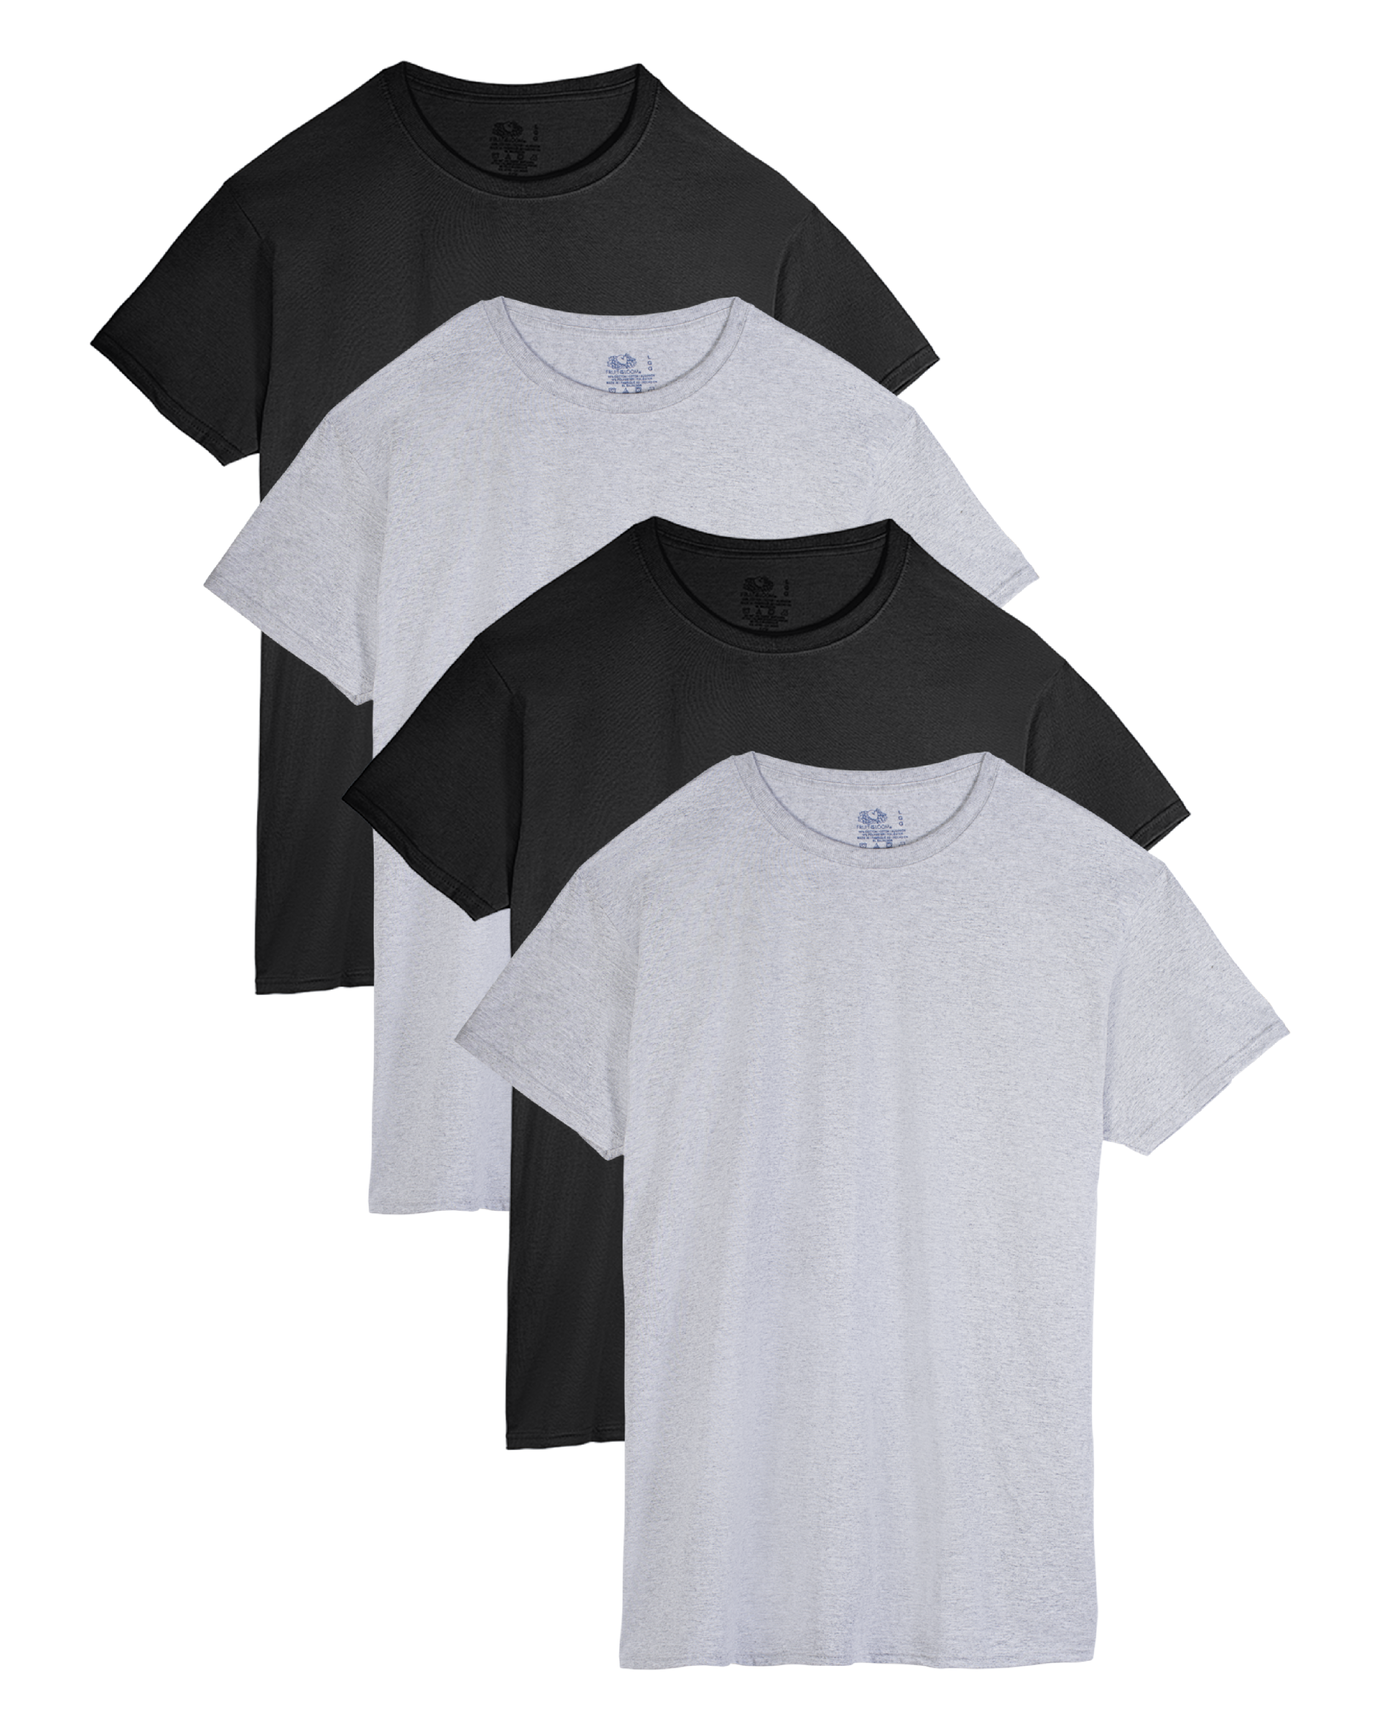 86140a209e42a6 Men s 4 Pack Black Gray Crew T-Shirt Extended Sizes Black and grey